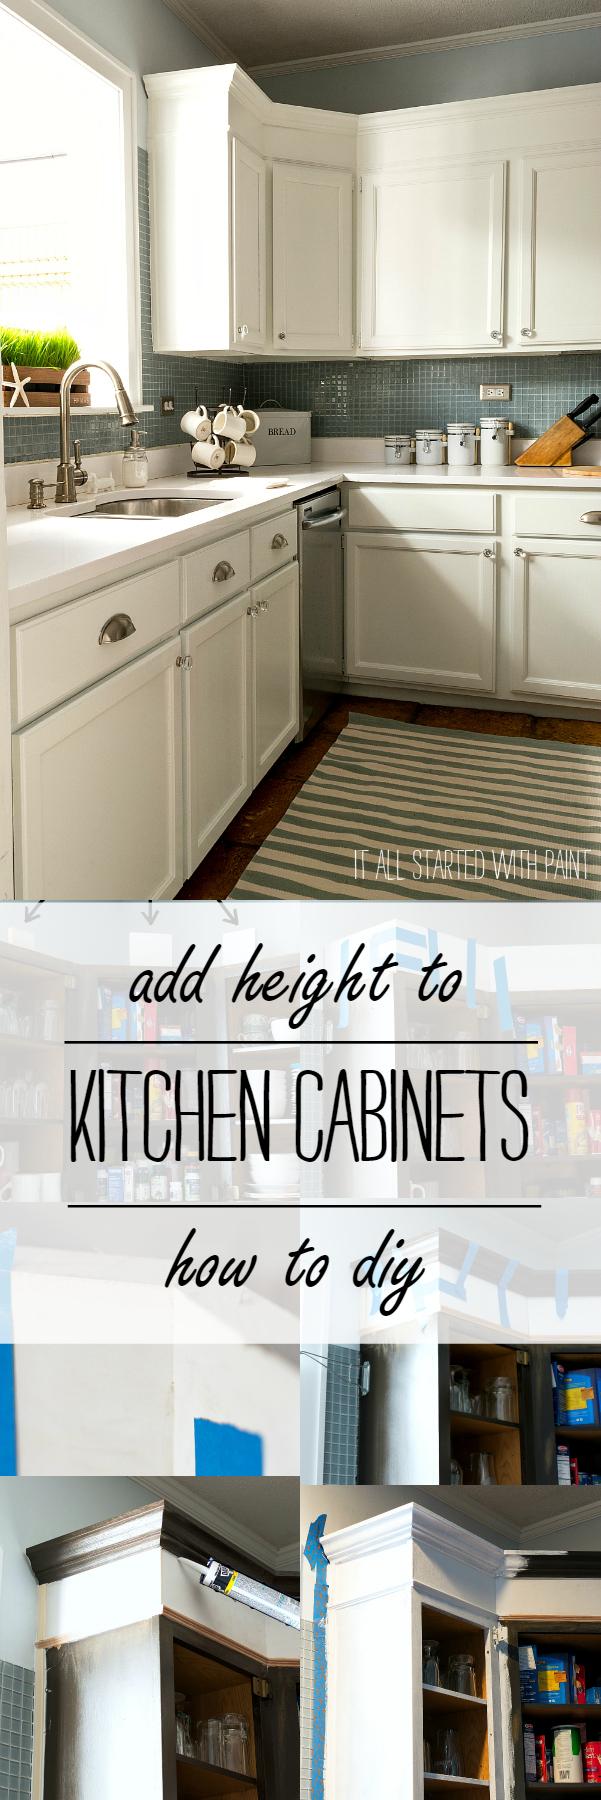 Easy Way to Add Height To Tops of Kitchen Cabinets Without Power Tools